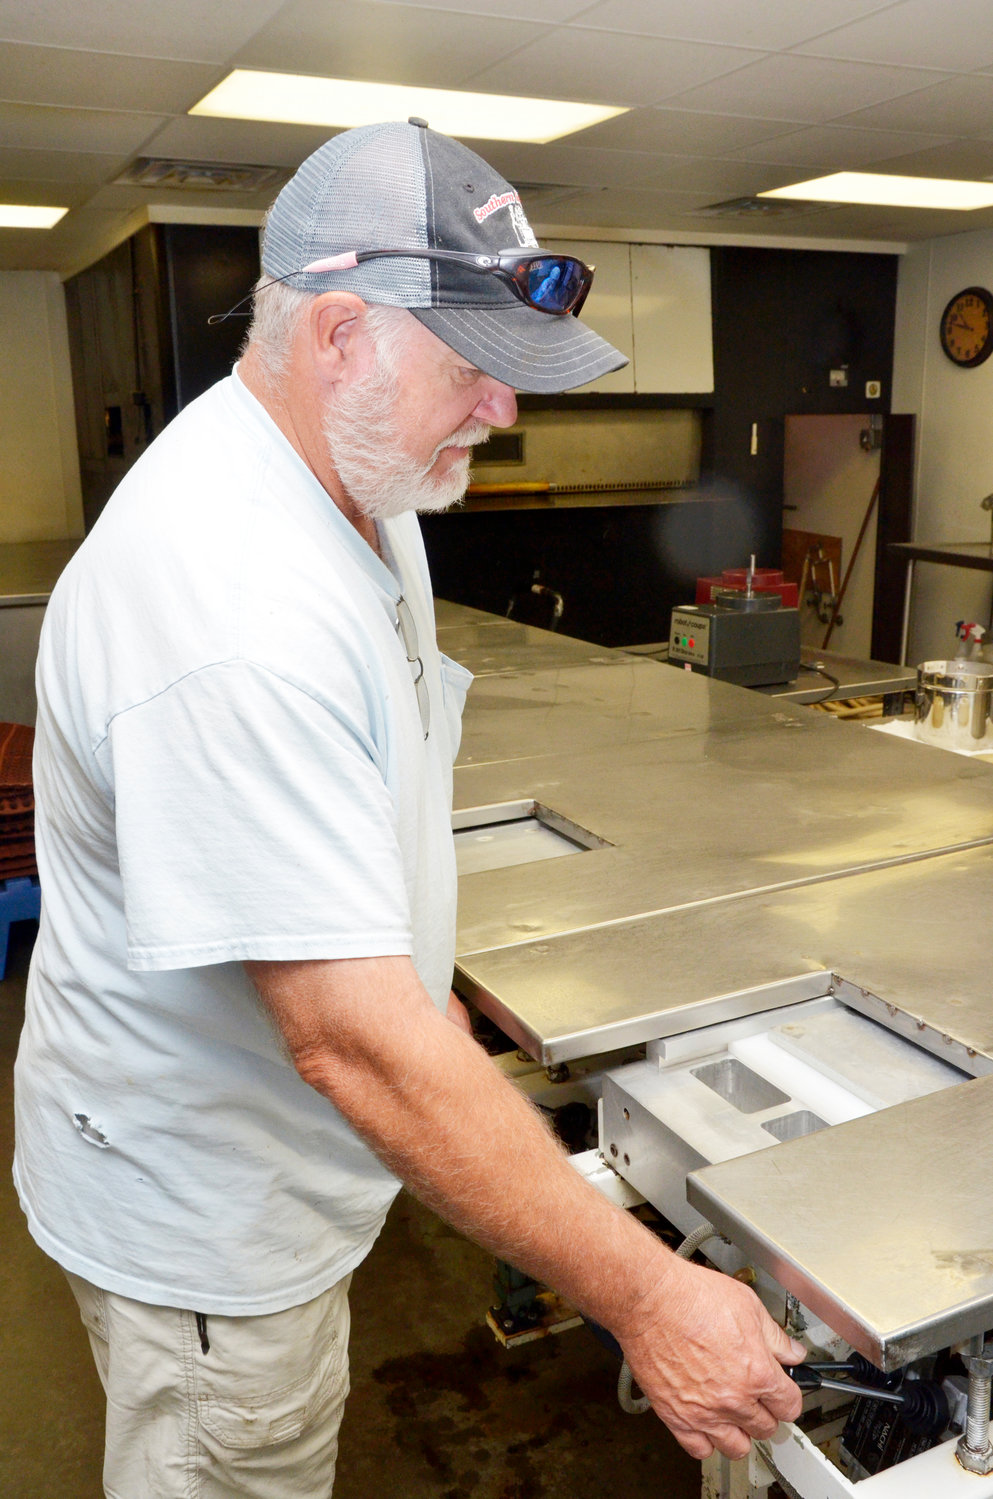 After cakes are baked in the oven, they are packaged while still pliable into forms to create the individual loaves. Randy Scott, co-owner of Sandy & Co., demonstrates with a machine that he built for the purpose.